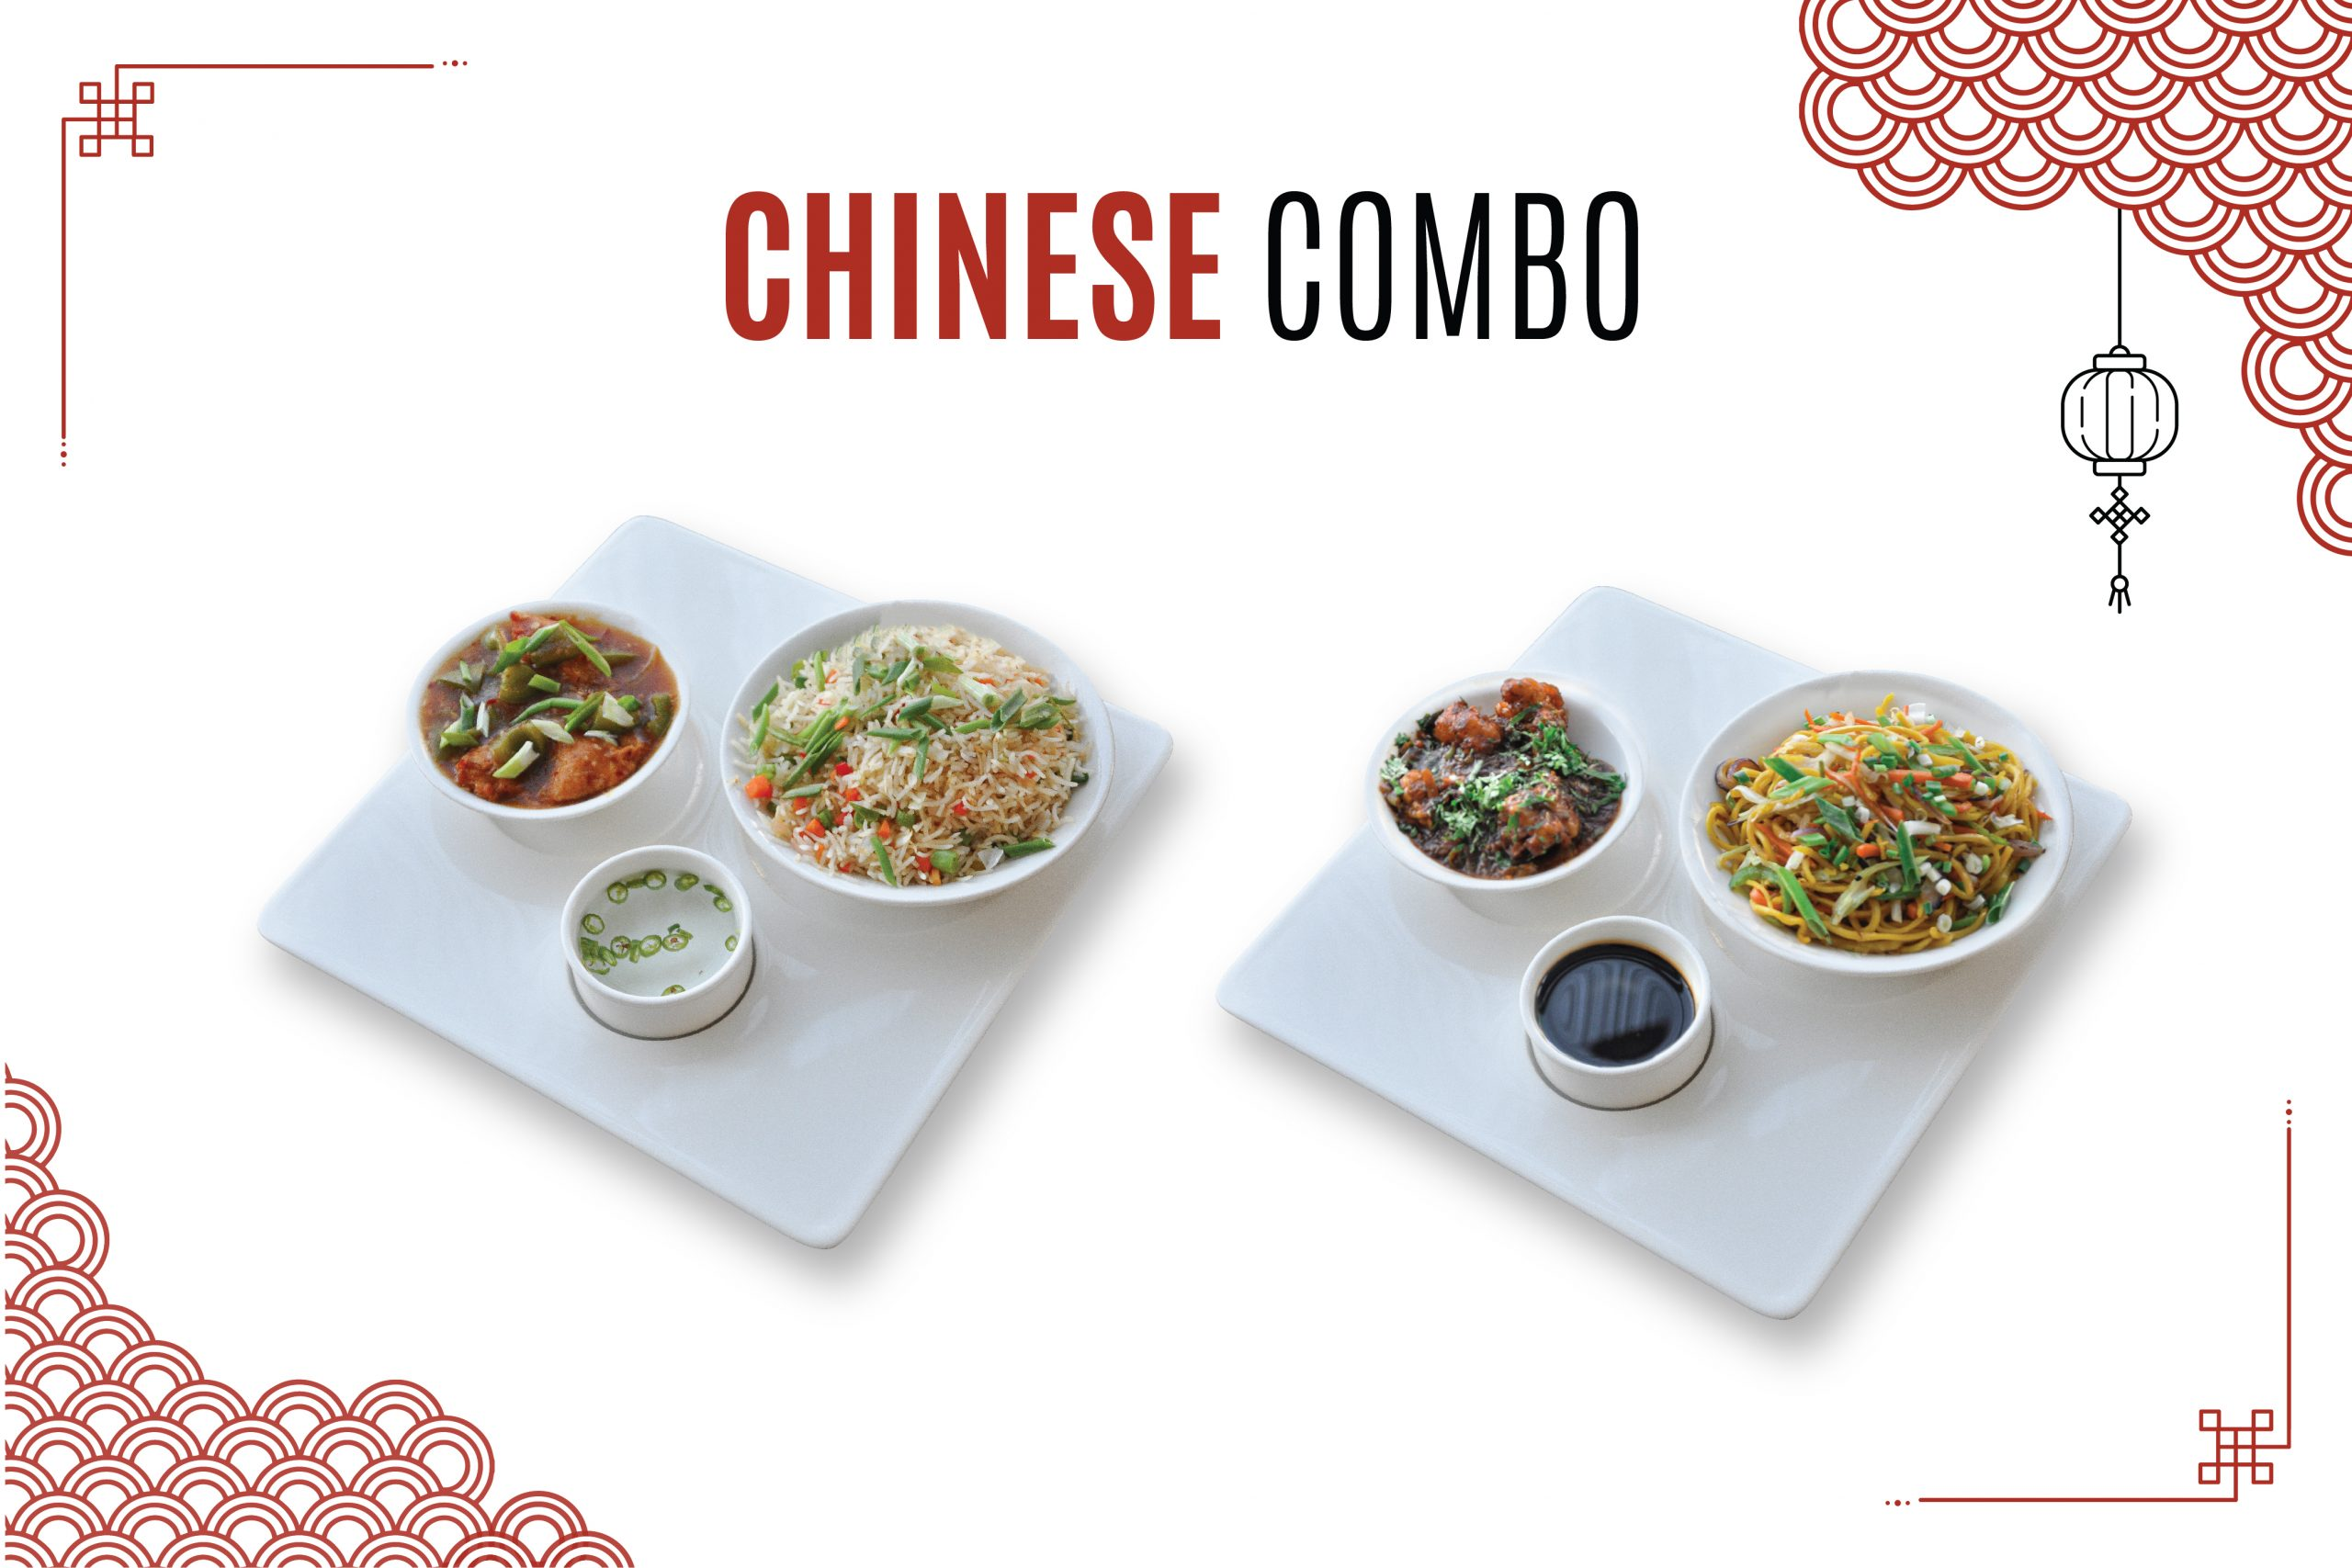 Chinese combo at AED 15